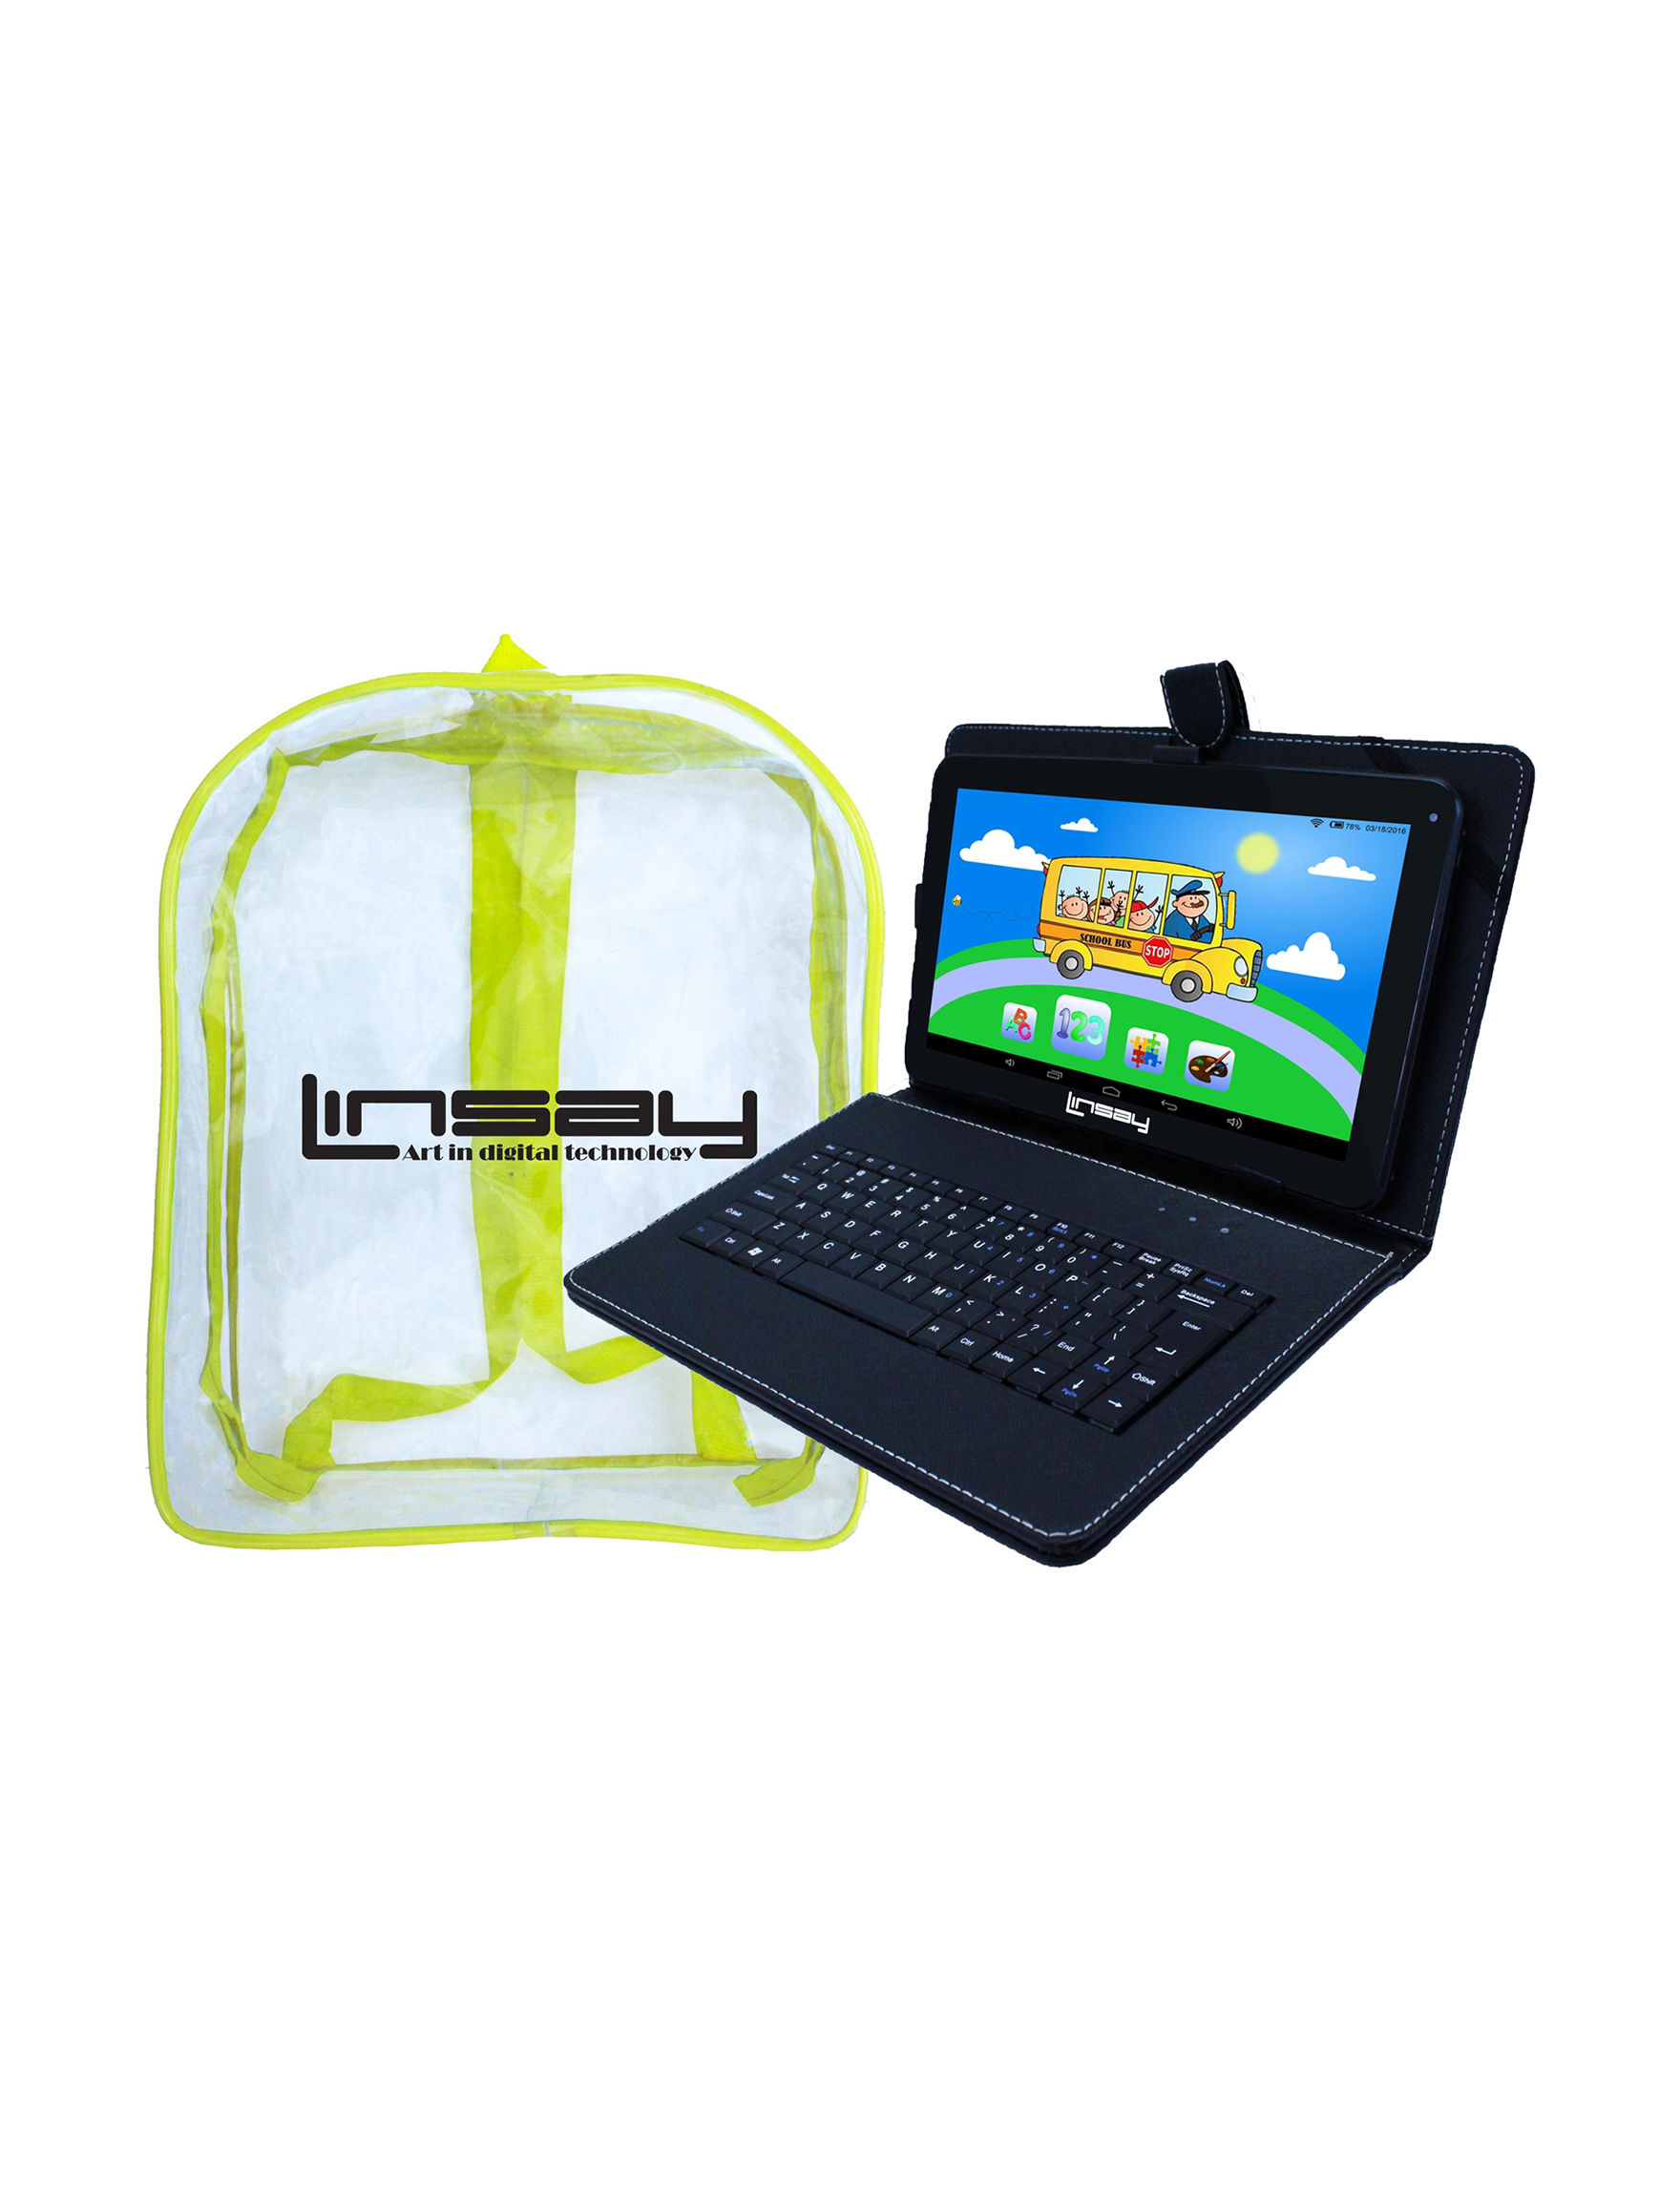 Linsay Black Tablets Computers & Tablets